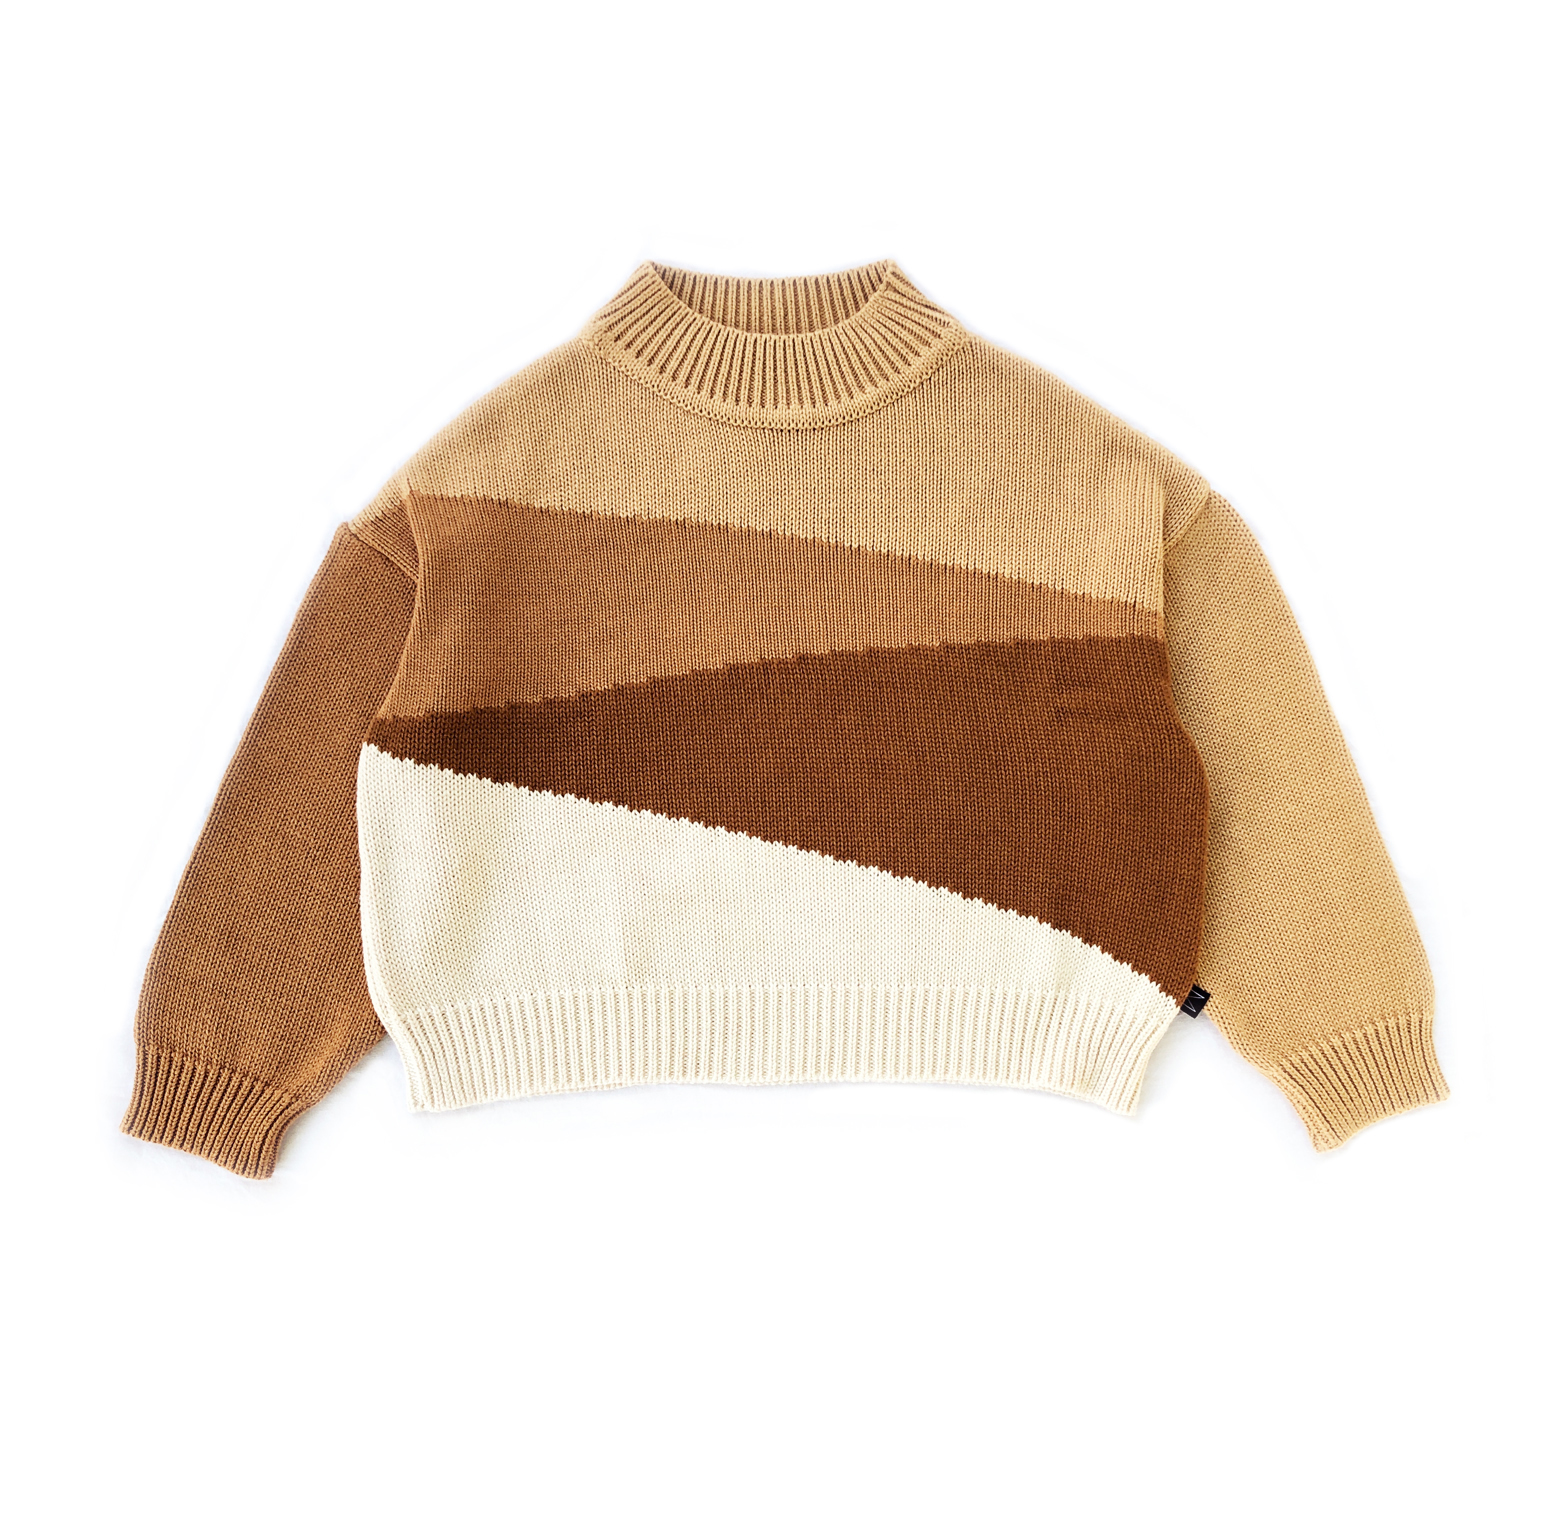 MONKIND Fields knit - Autumn -